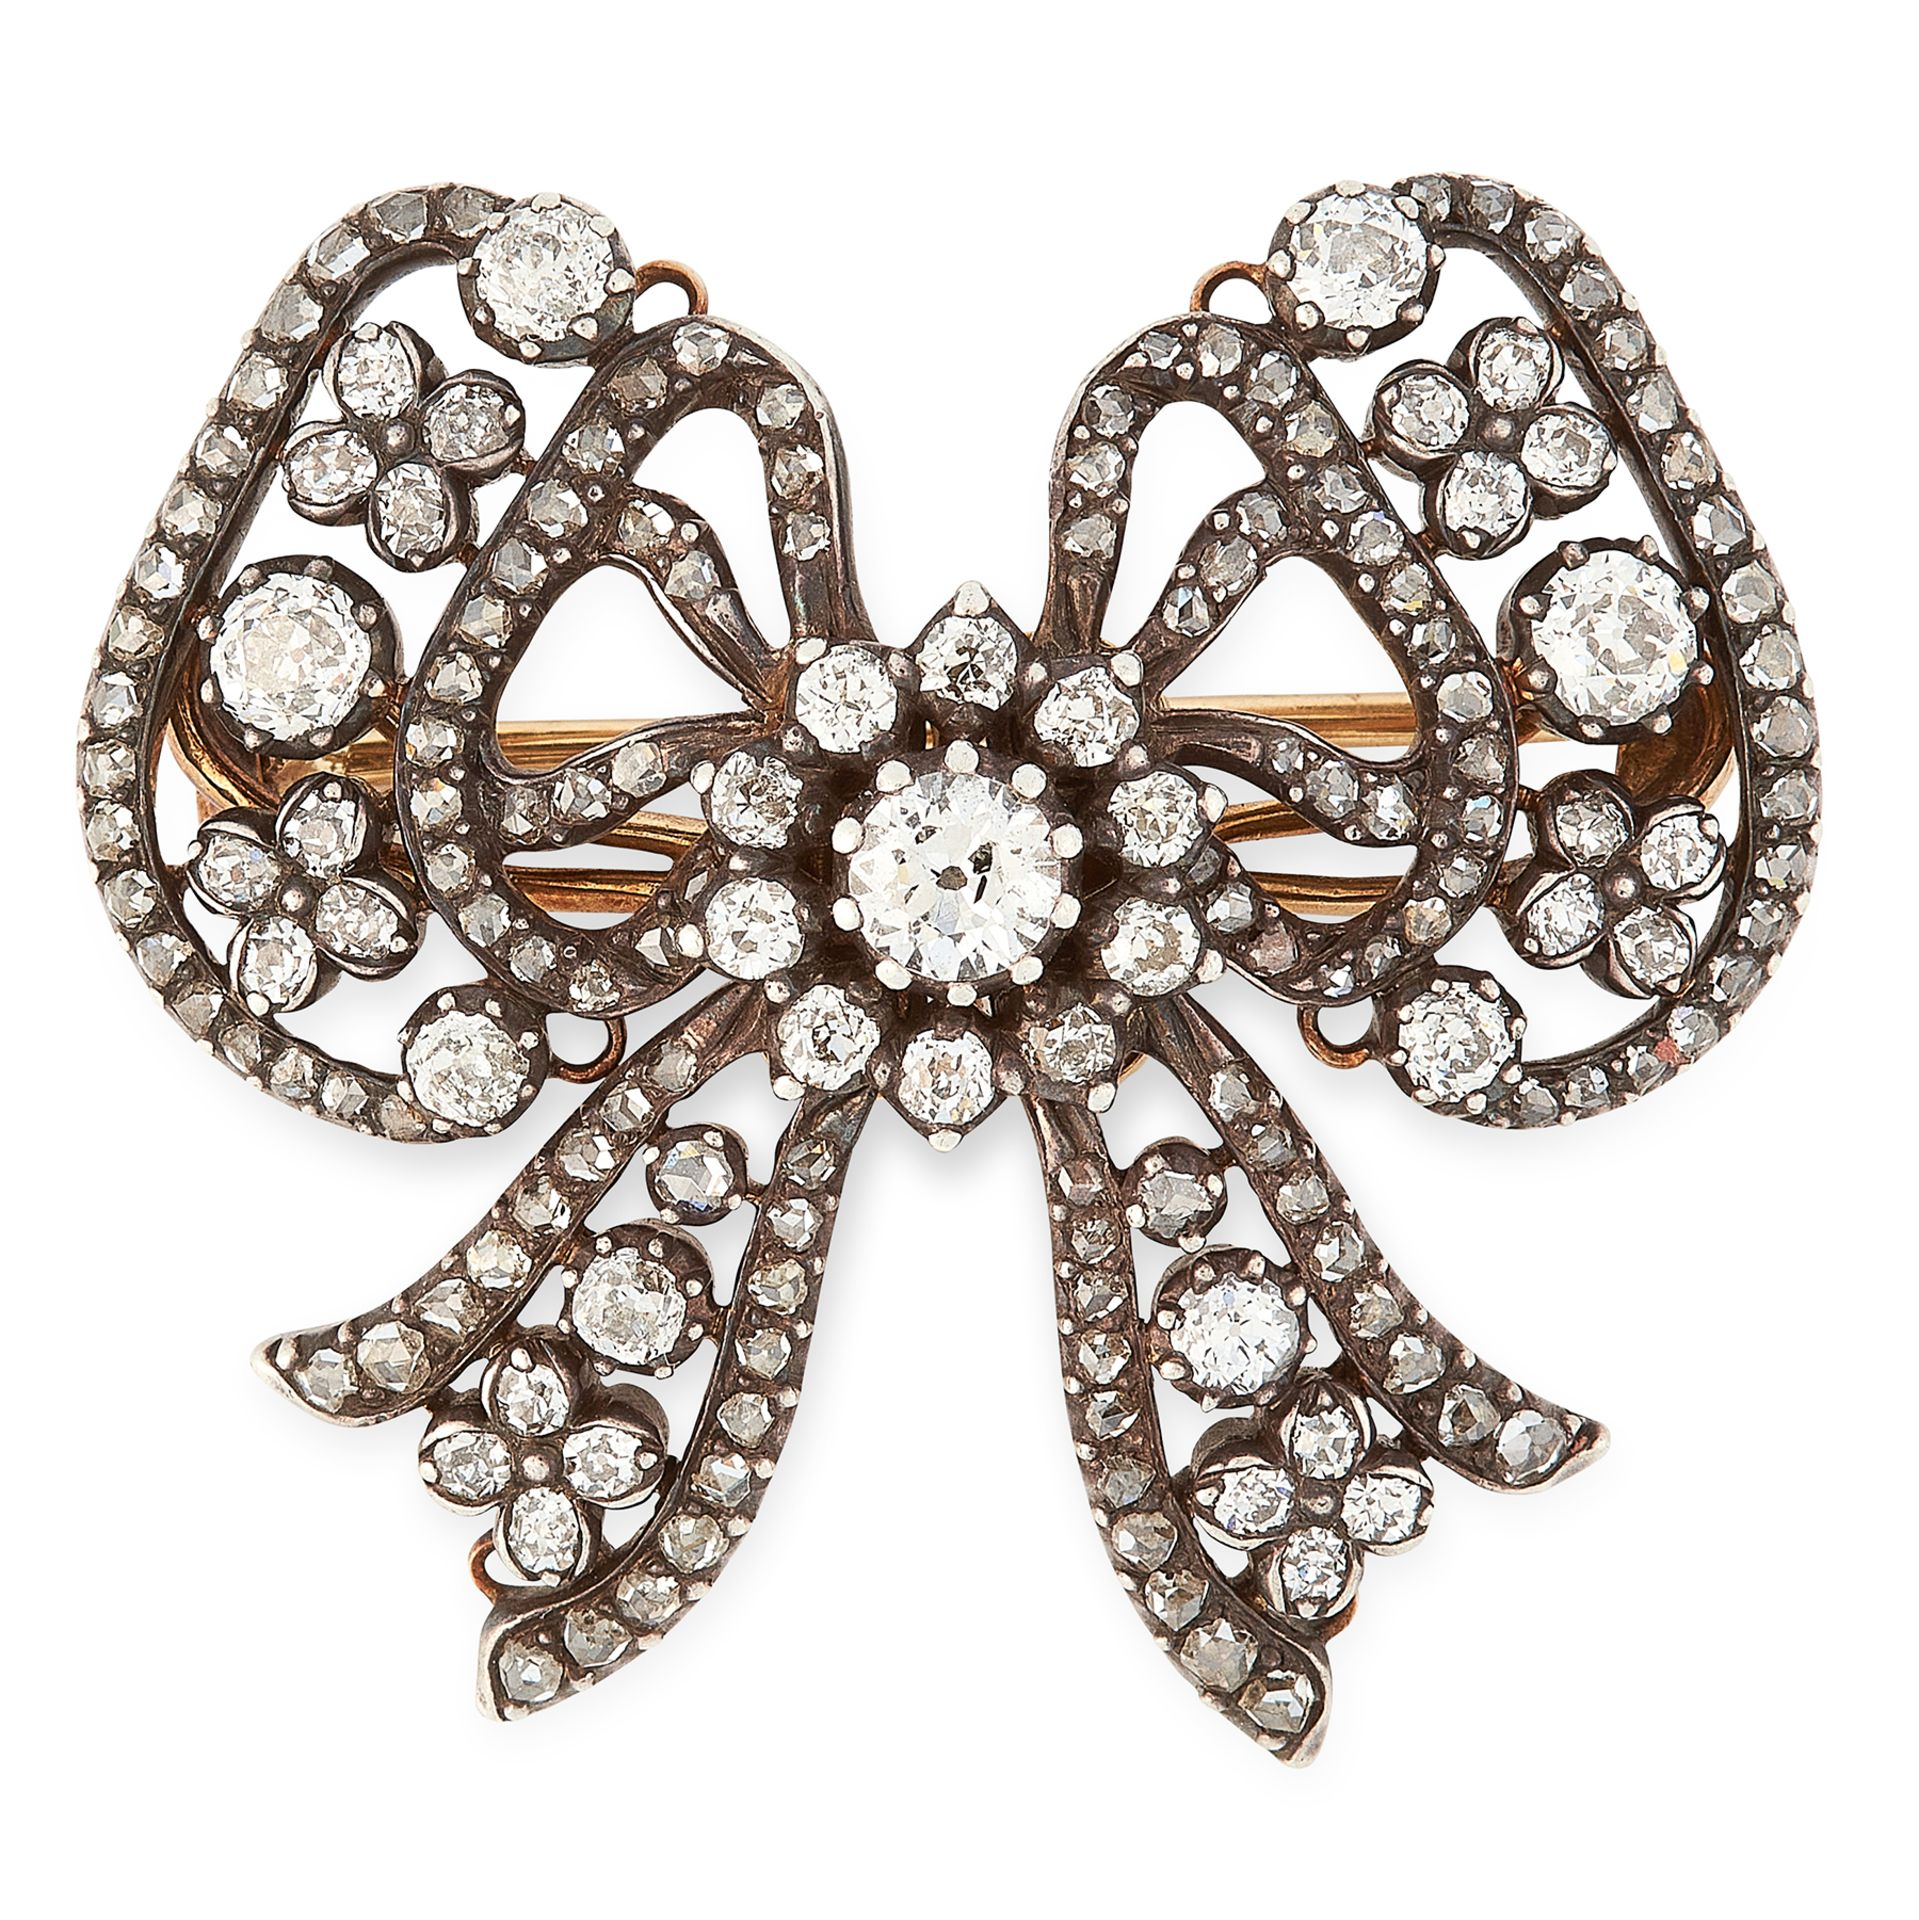 Los 39 - AN ANTIQUE DIAMOND BOW BROOCH, CARTIER LATE 19TH CENTURY in 18ct yellow gold and silver, designed as